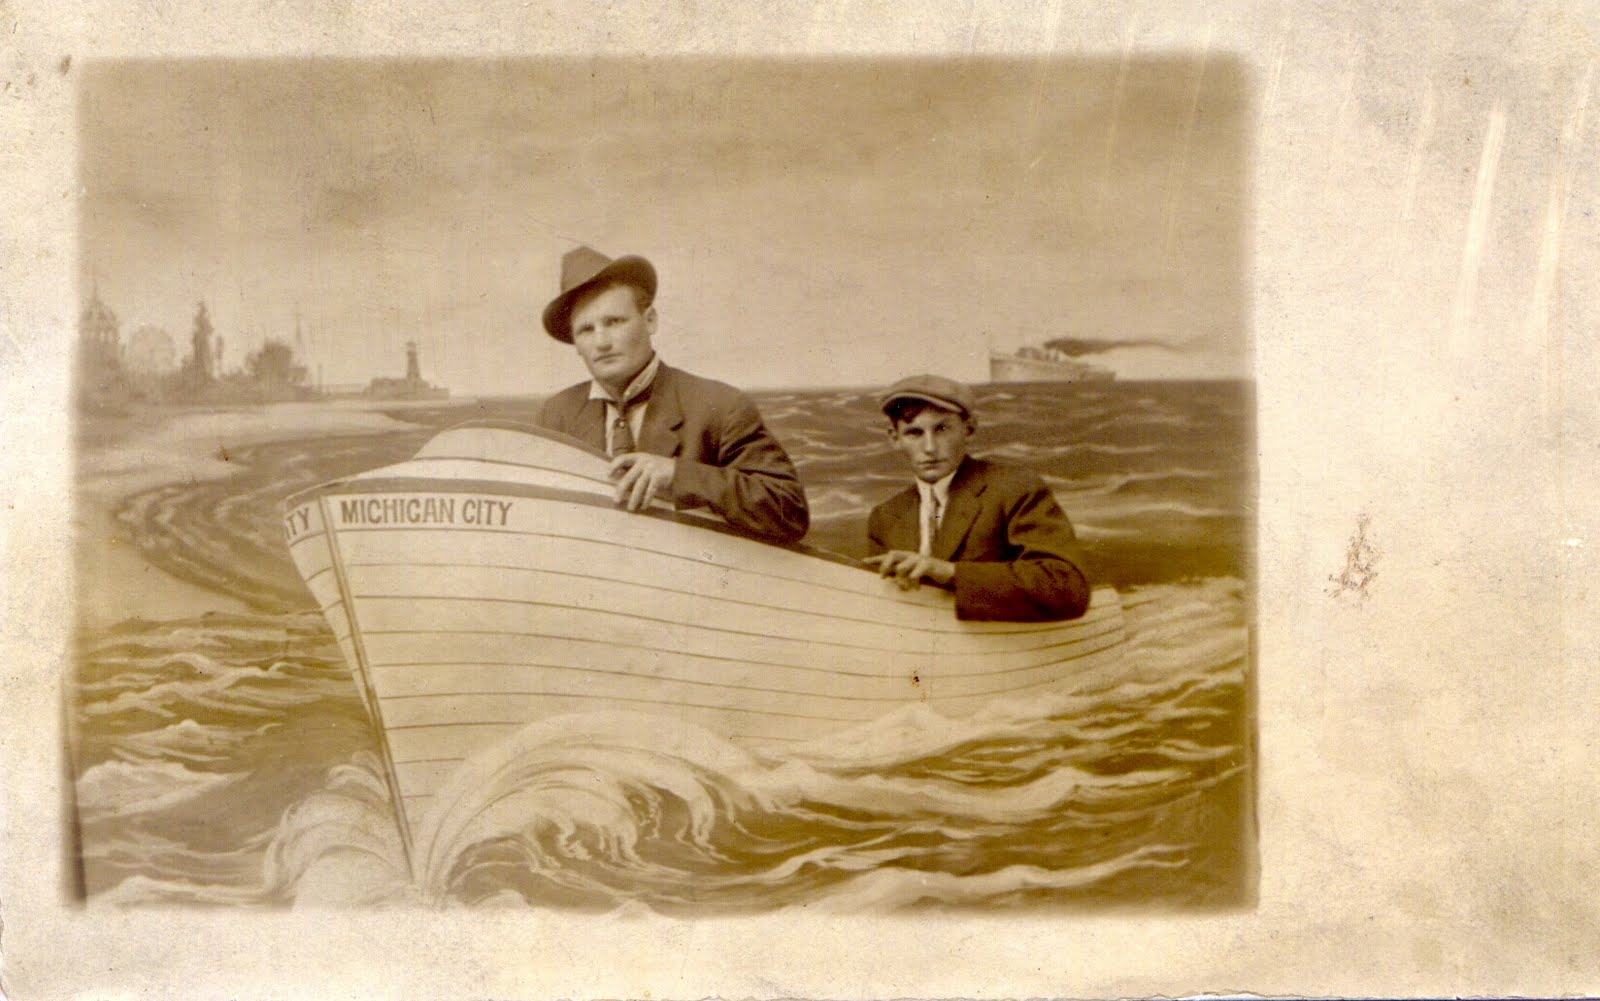 It Begins With The Invention Of Collodion Plates Carte De Visite And Cabinet Card In Late 1850s When Photographers Began Treating